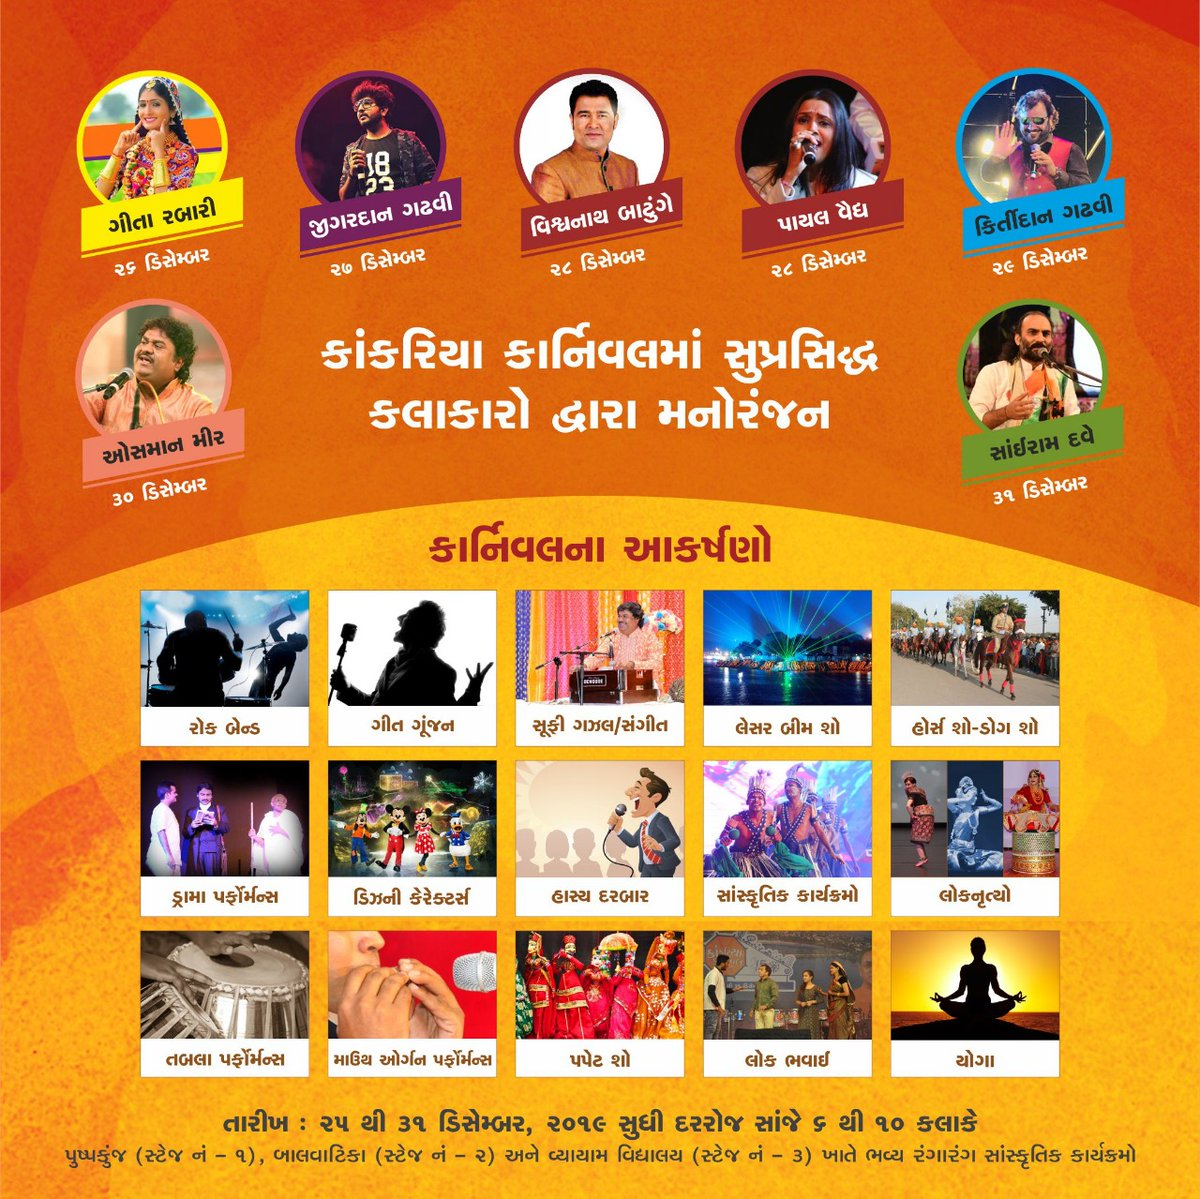 Renown singers to give performances at Kankaria Carnival 2019